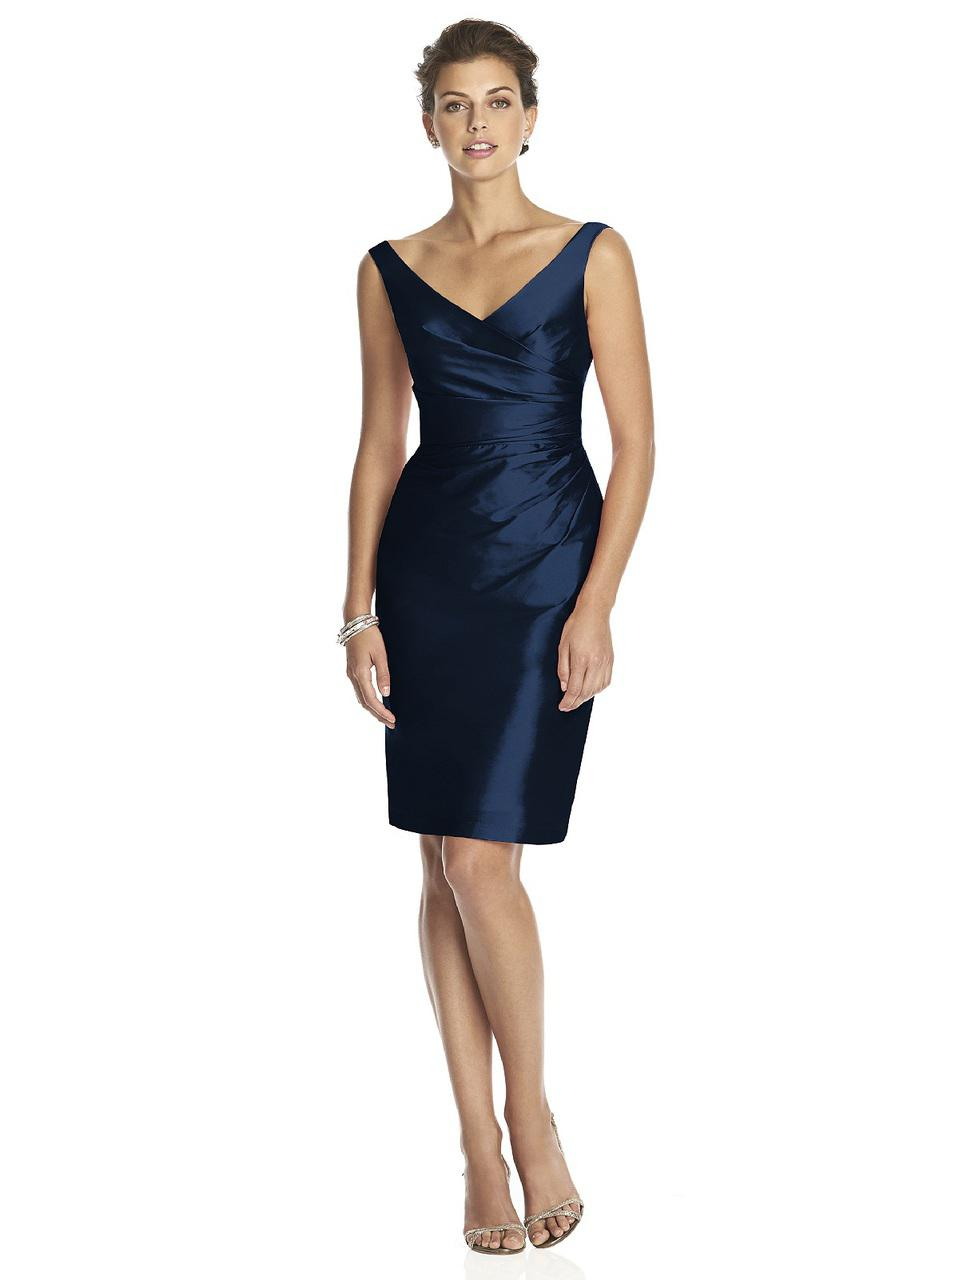 Lyst - Alfred Sung D Bridesmaid Dress In Midnight in Blue - Save 13%